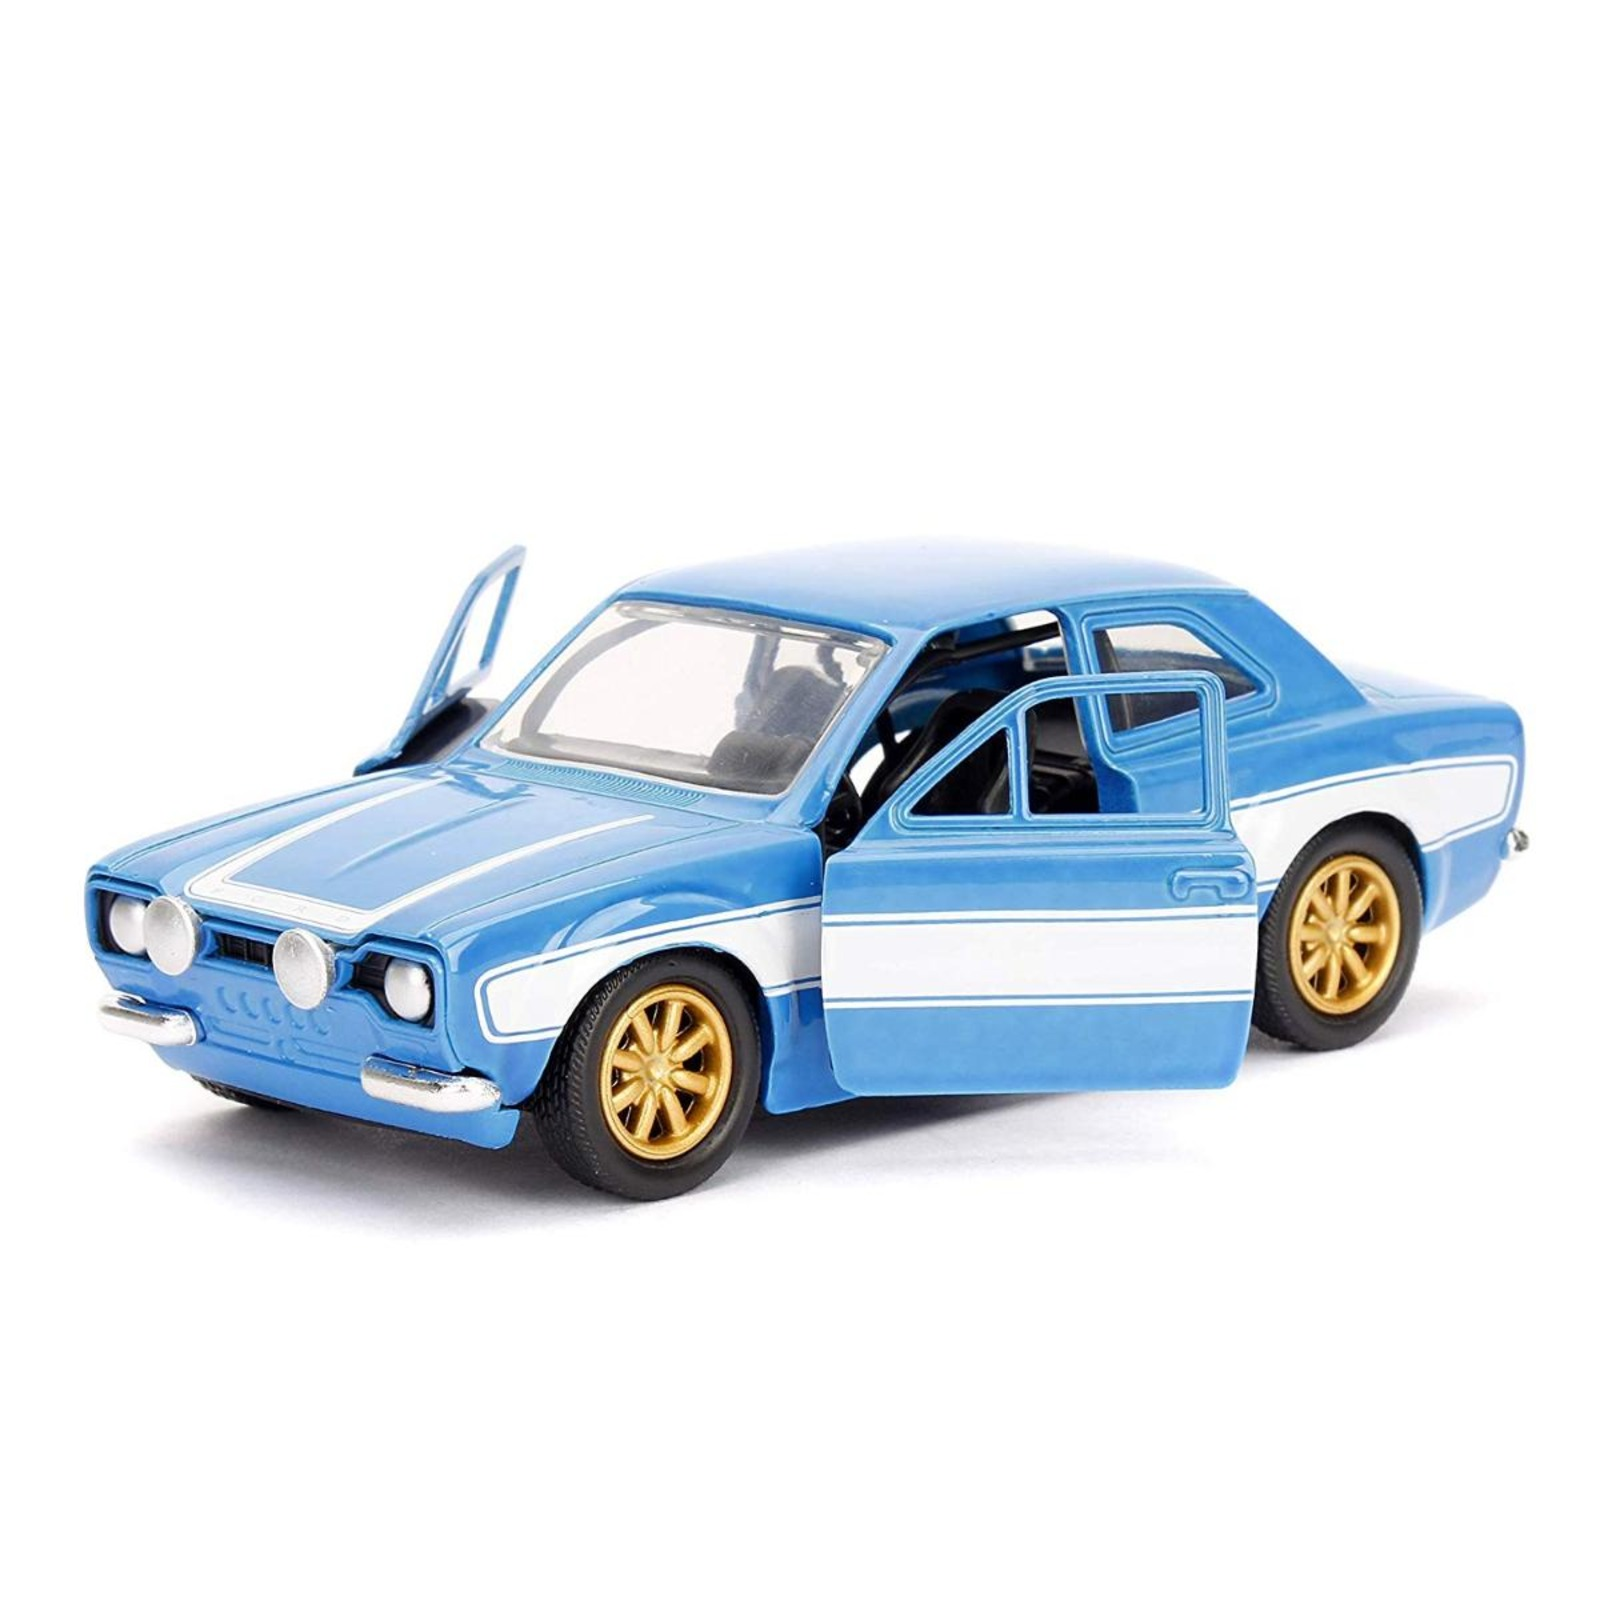 Jada 1970 Brian's Ford Escort Blue with White Stripes